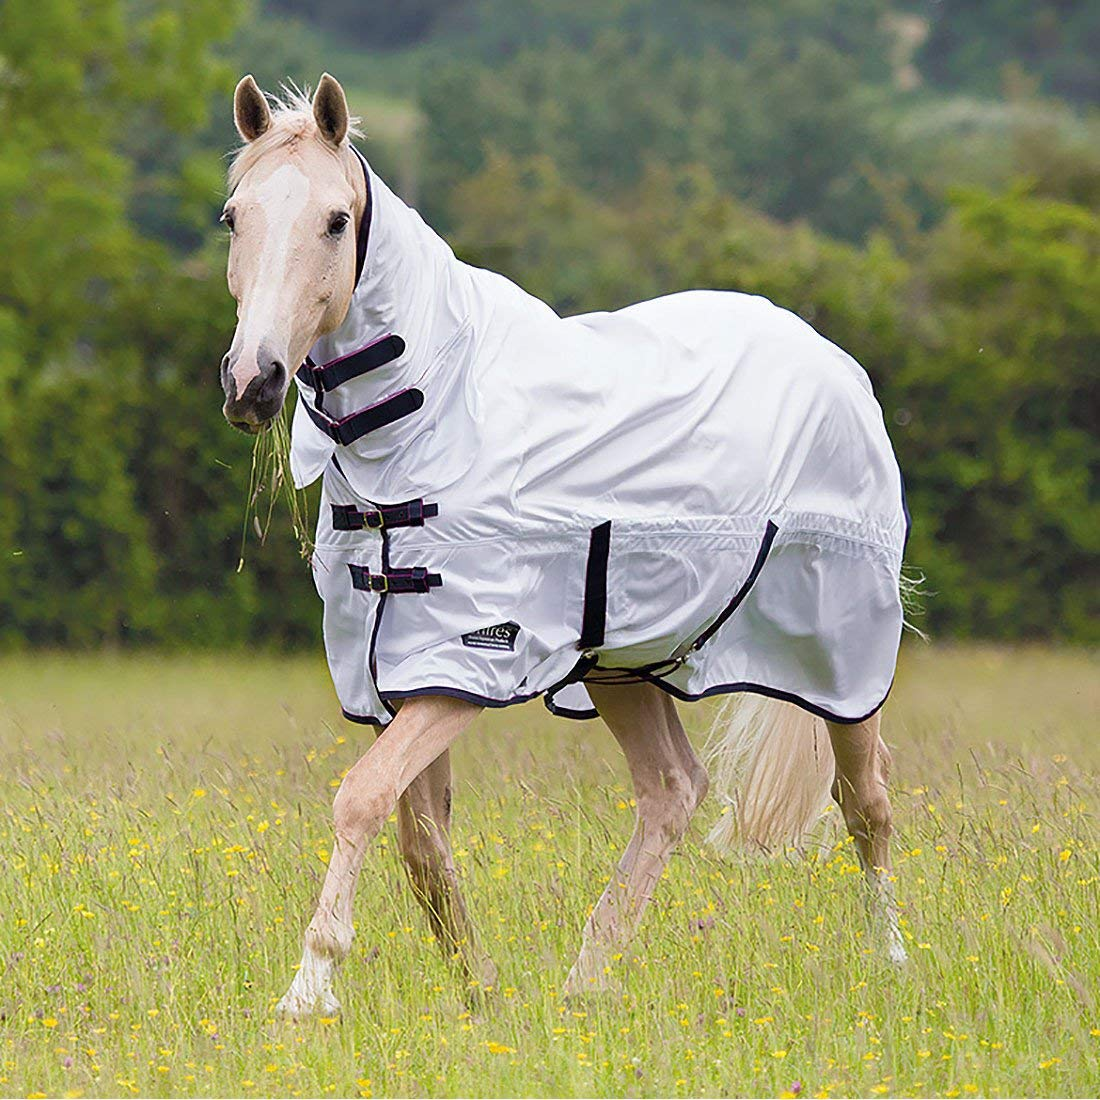 Shires Shires Shires – Tempest Cavallo Combo 2016, 5ft 0in 90270f